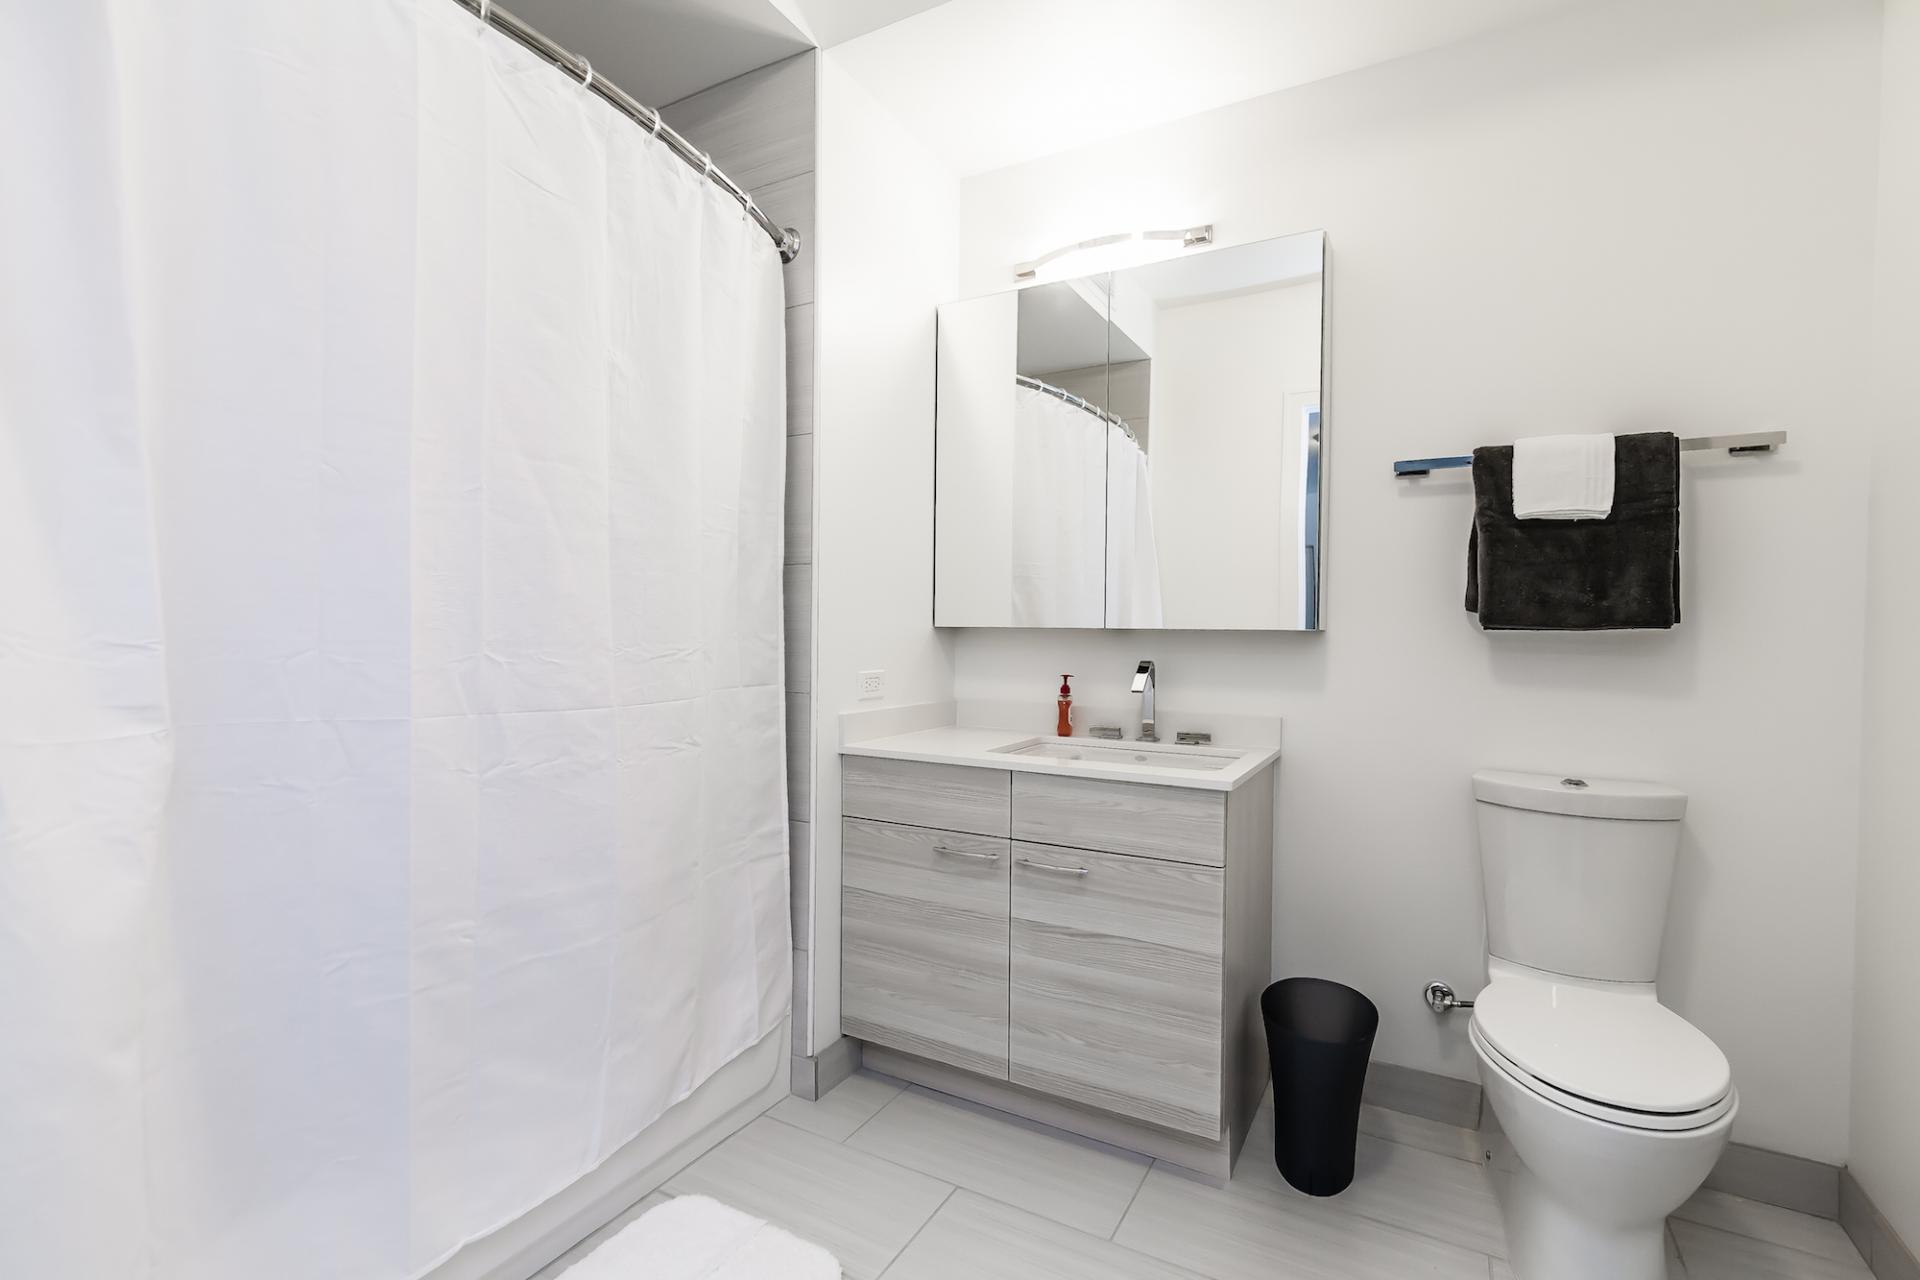 Bathroom at 73 Lake Apartments, New East Side, Chicago